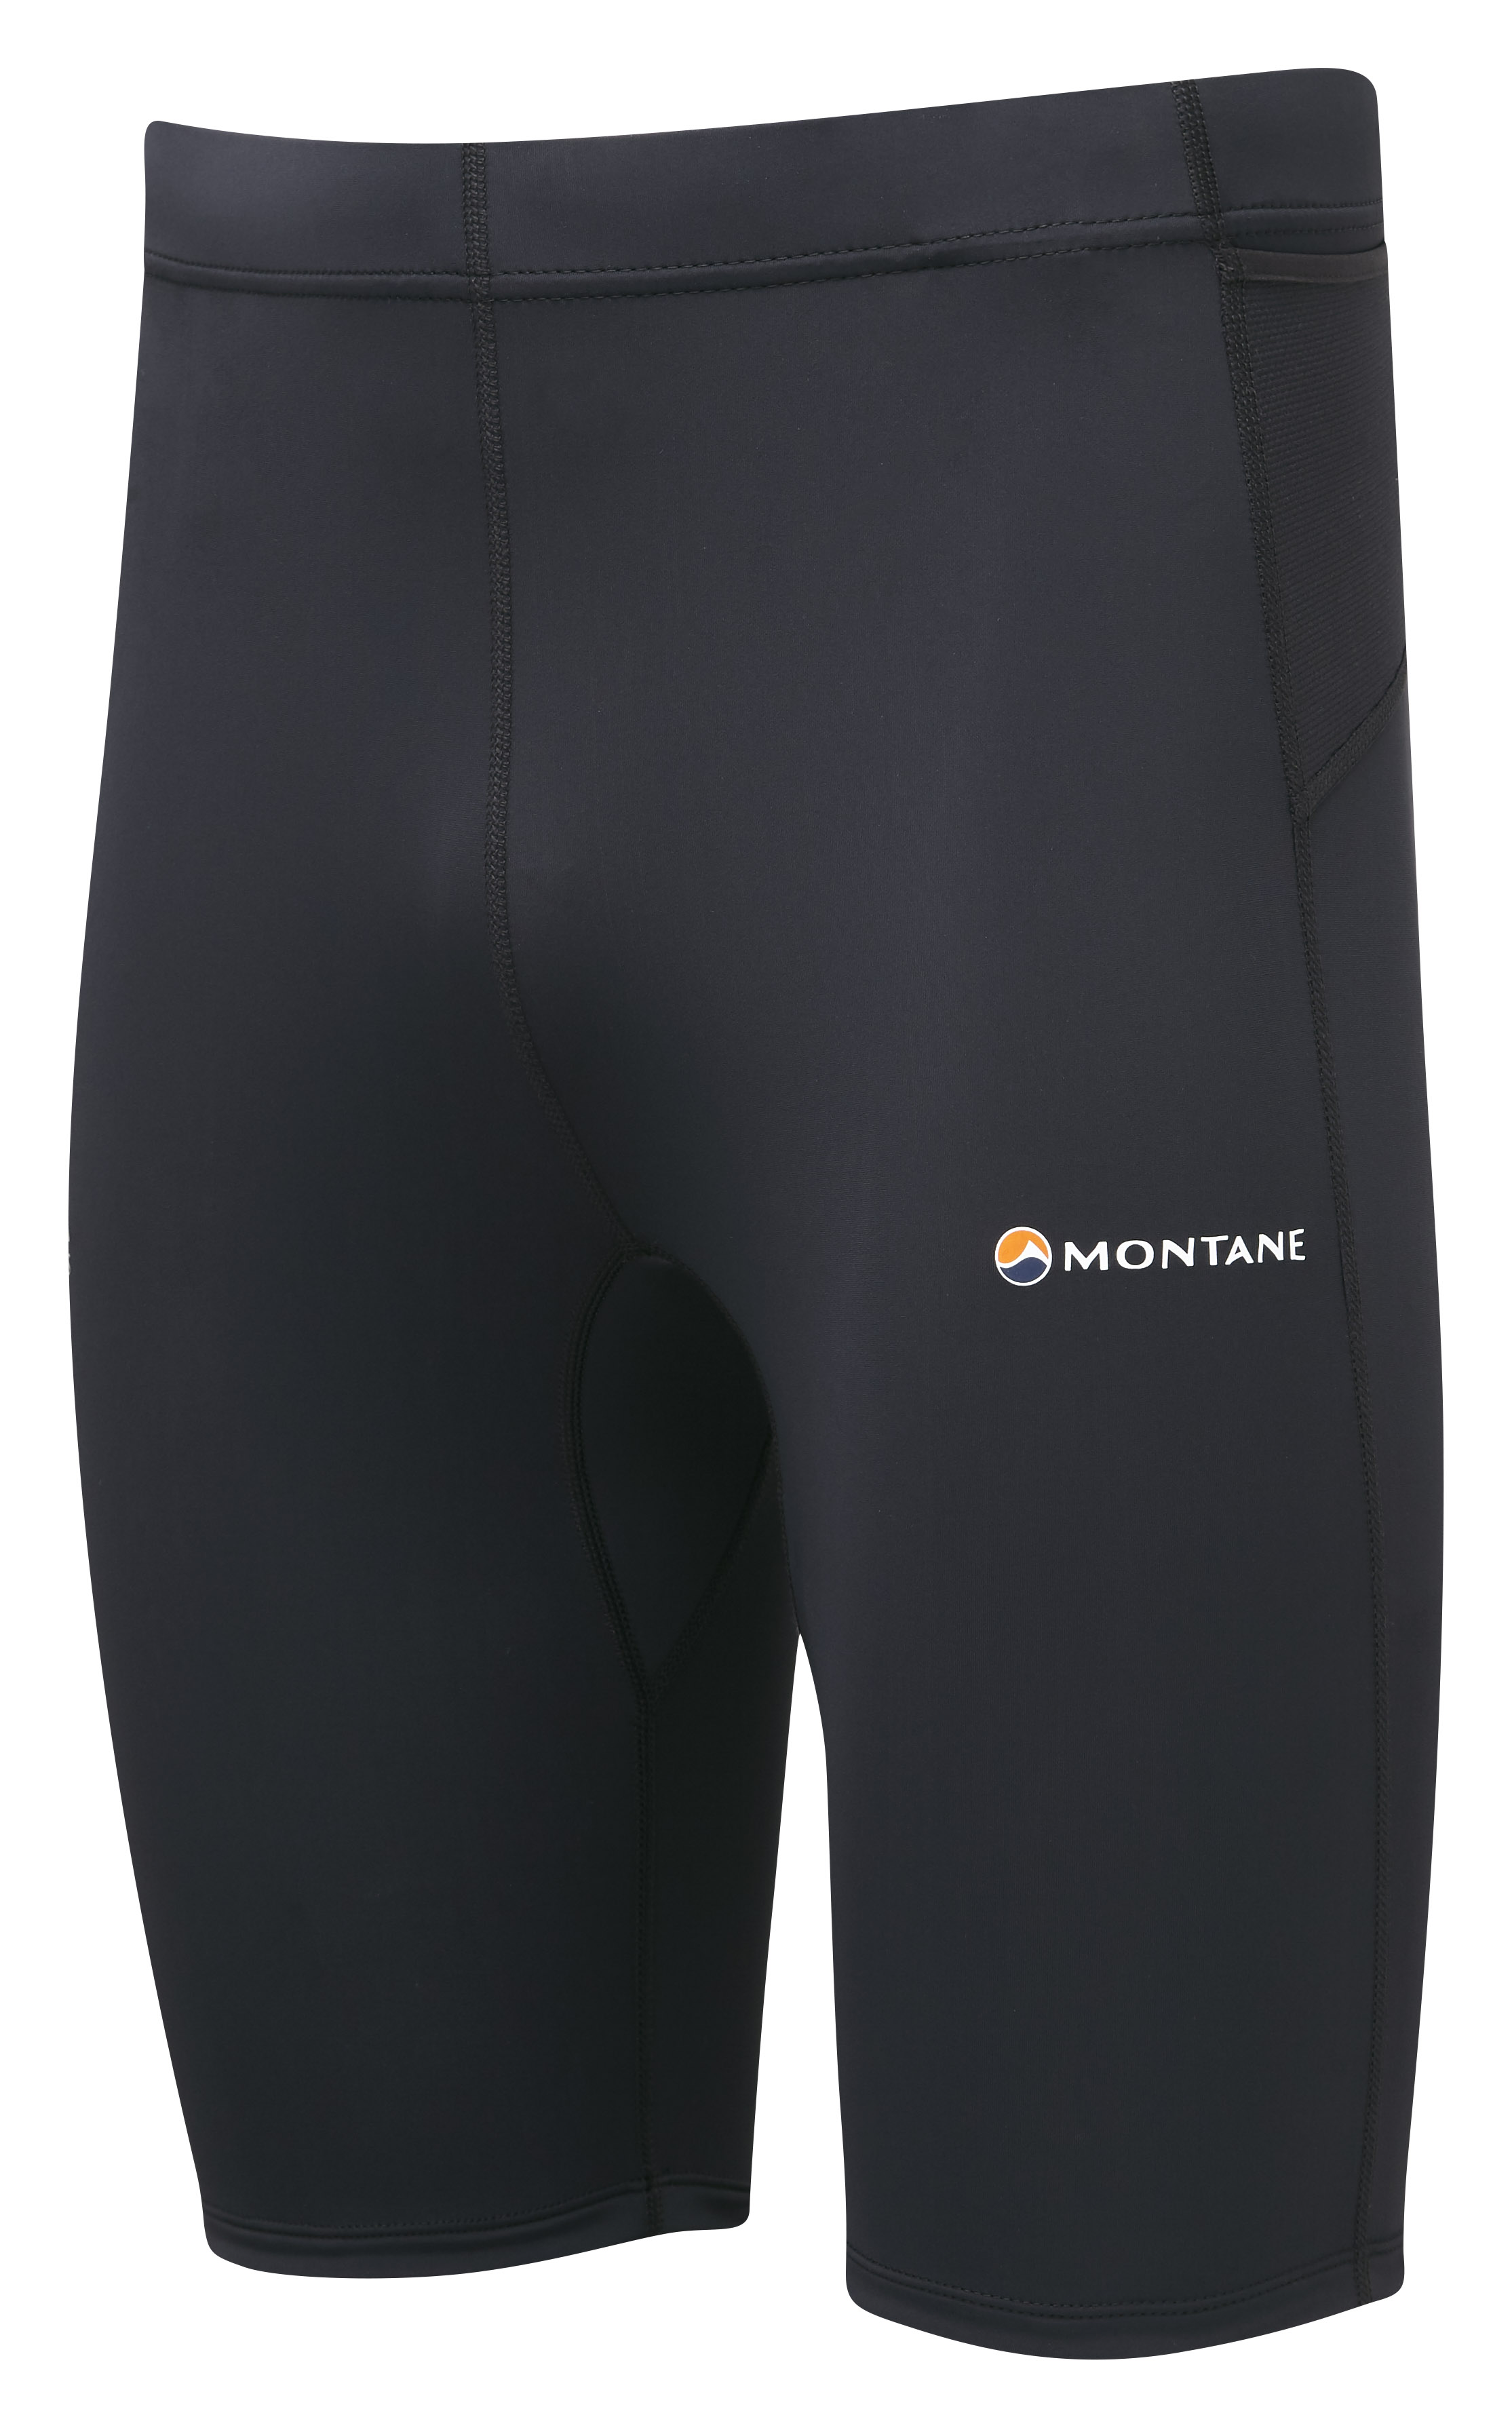 Montane Trail Series Short Tights | Trousers